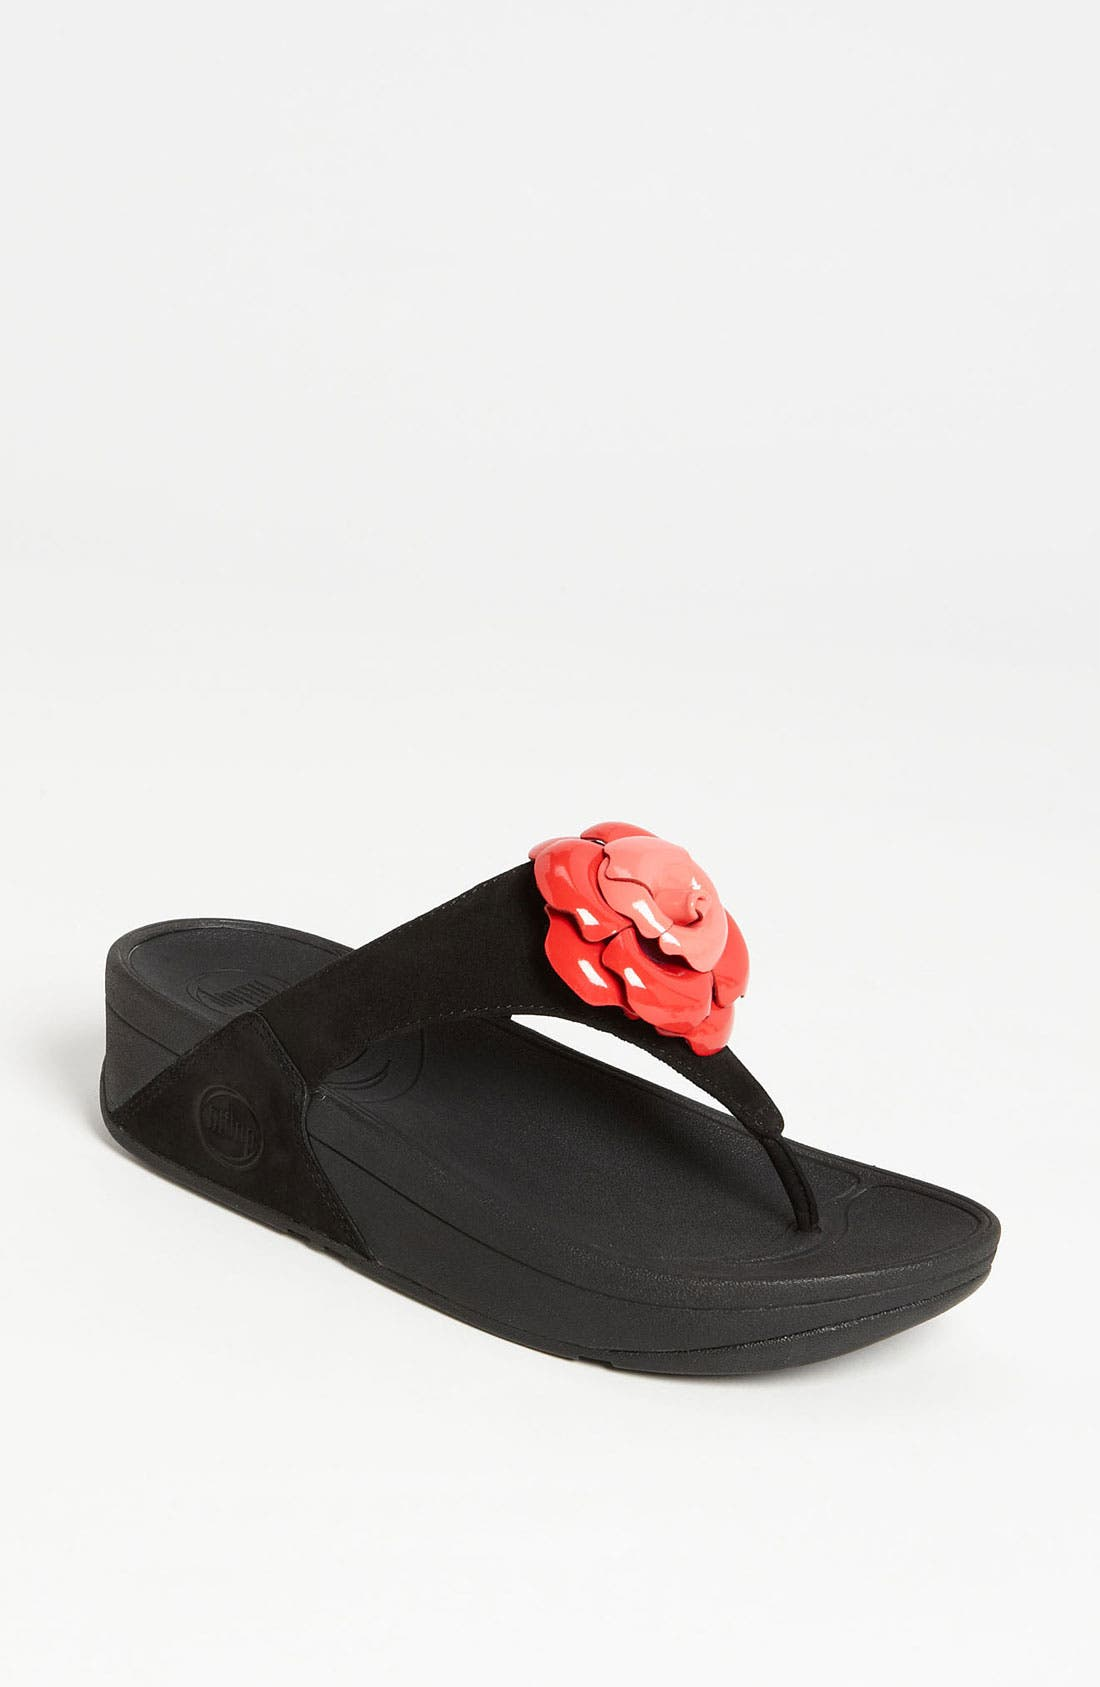 Alternate Image 1 Selected - FitFlop 'Florent' Sandal